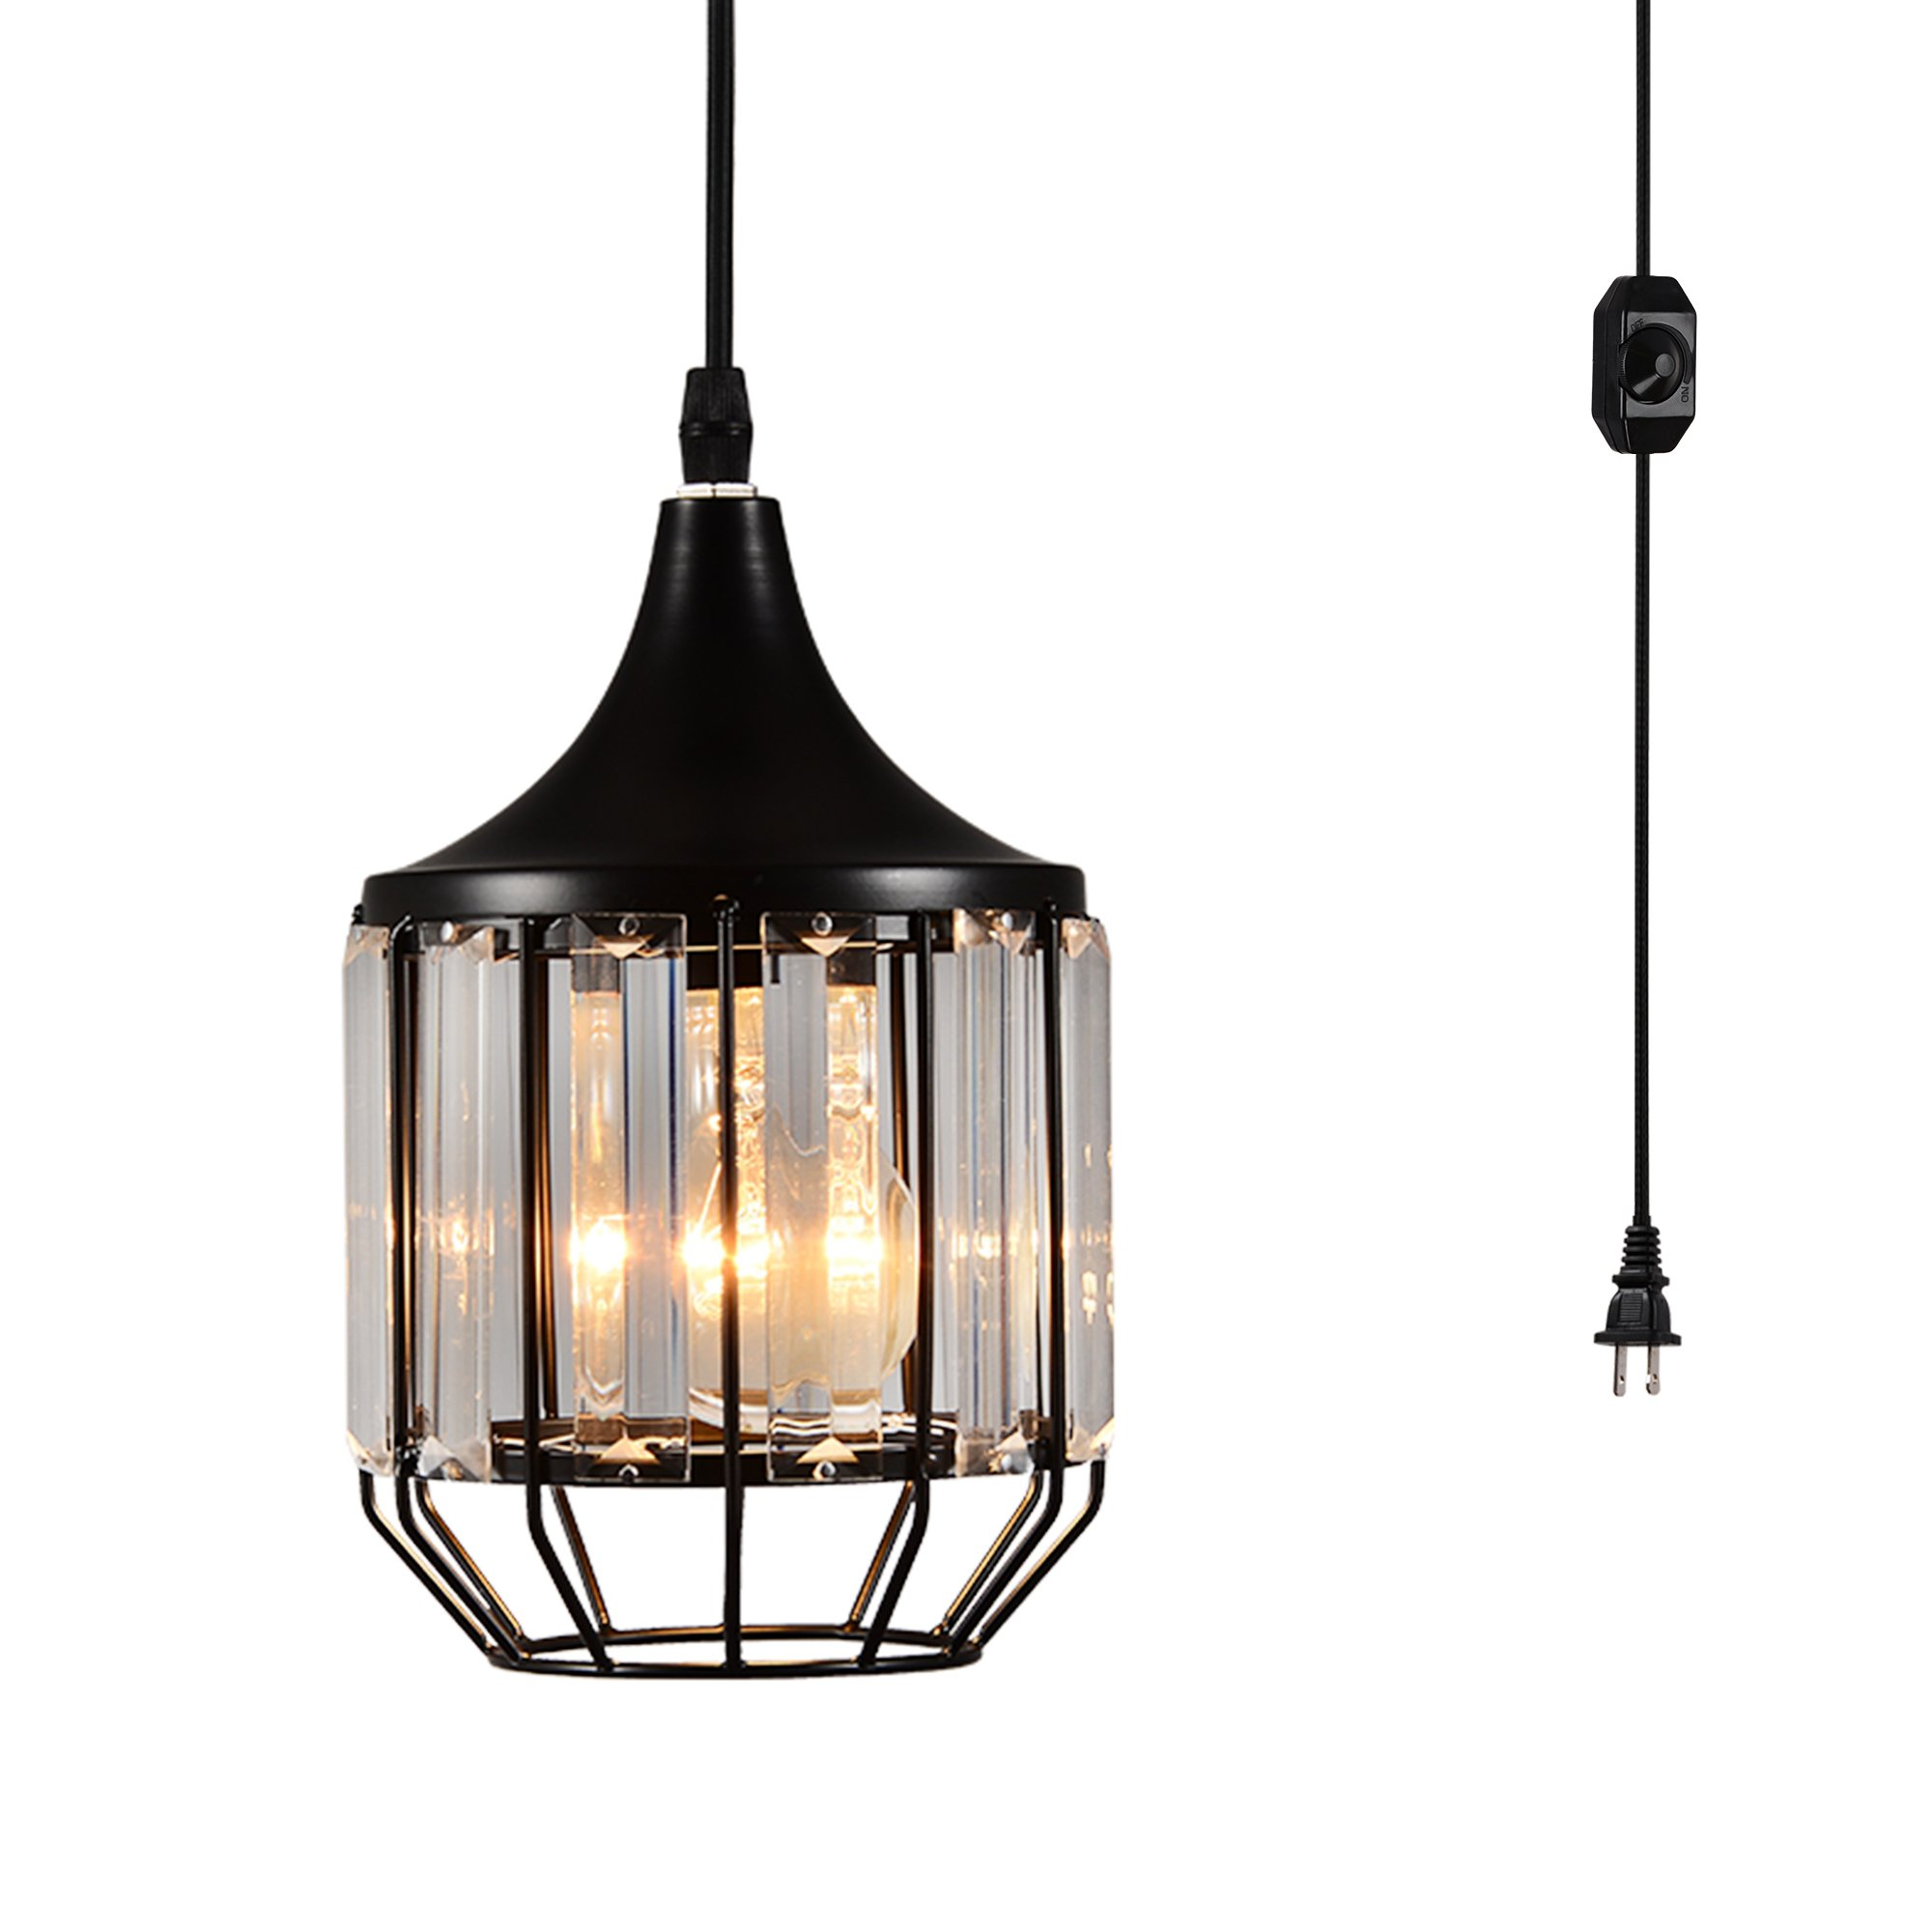 Creatgeek Plug-in Crystal Pendant Light with 15 Ft Cord and In-Line On/Off Dimmer Switch for Kitchen Island, Dining Room, Black Antique Metal Finish